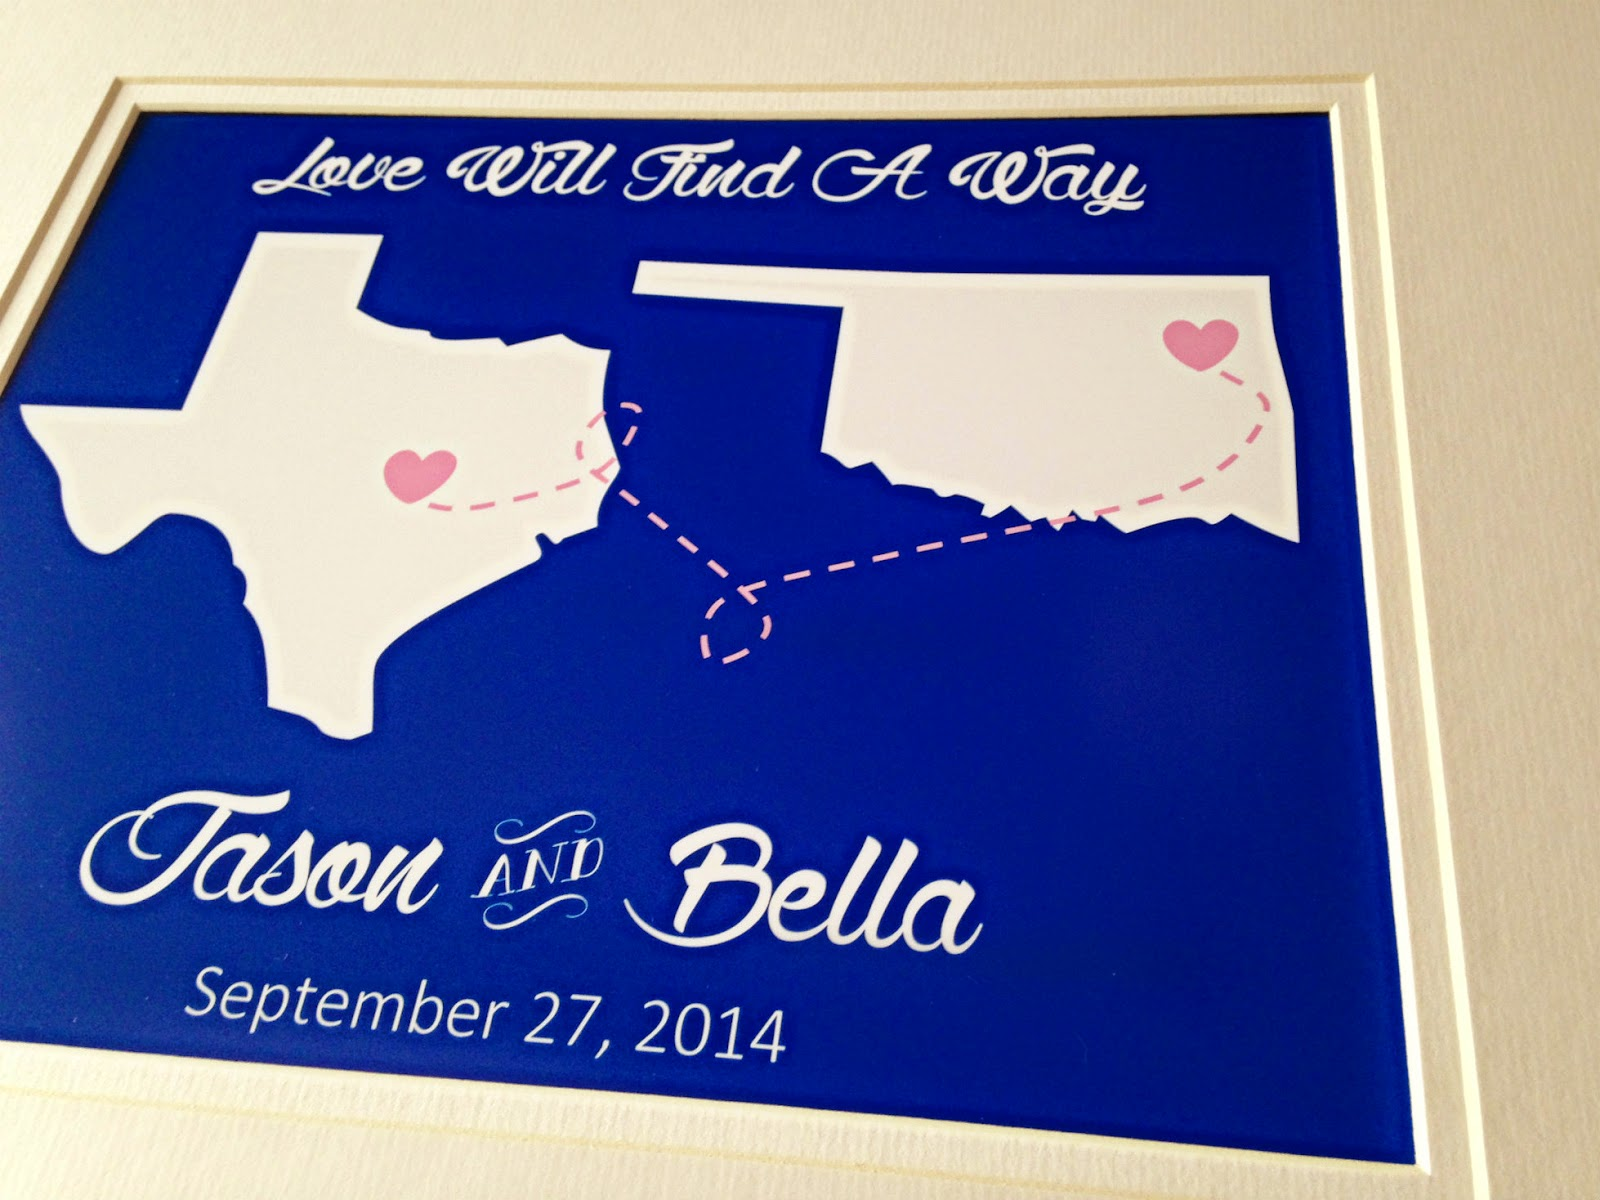 https://www.etsy.com/listing/203213810/customized-love-will-find-a-way-85x11?ref=shop_home_active_10